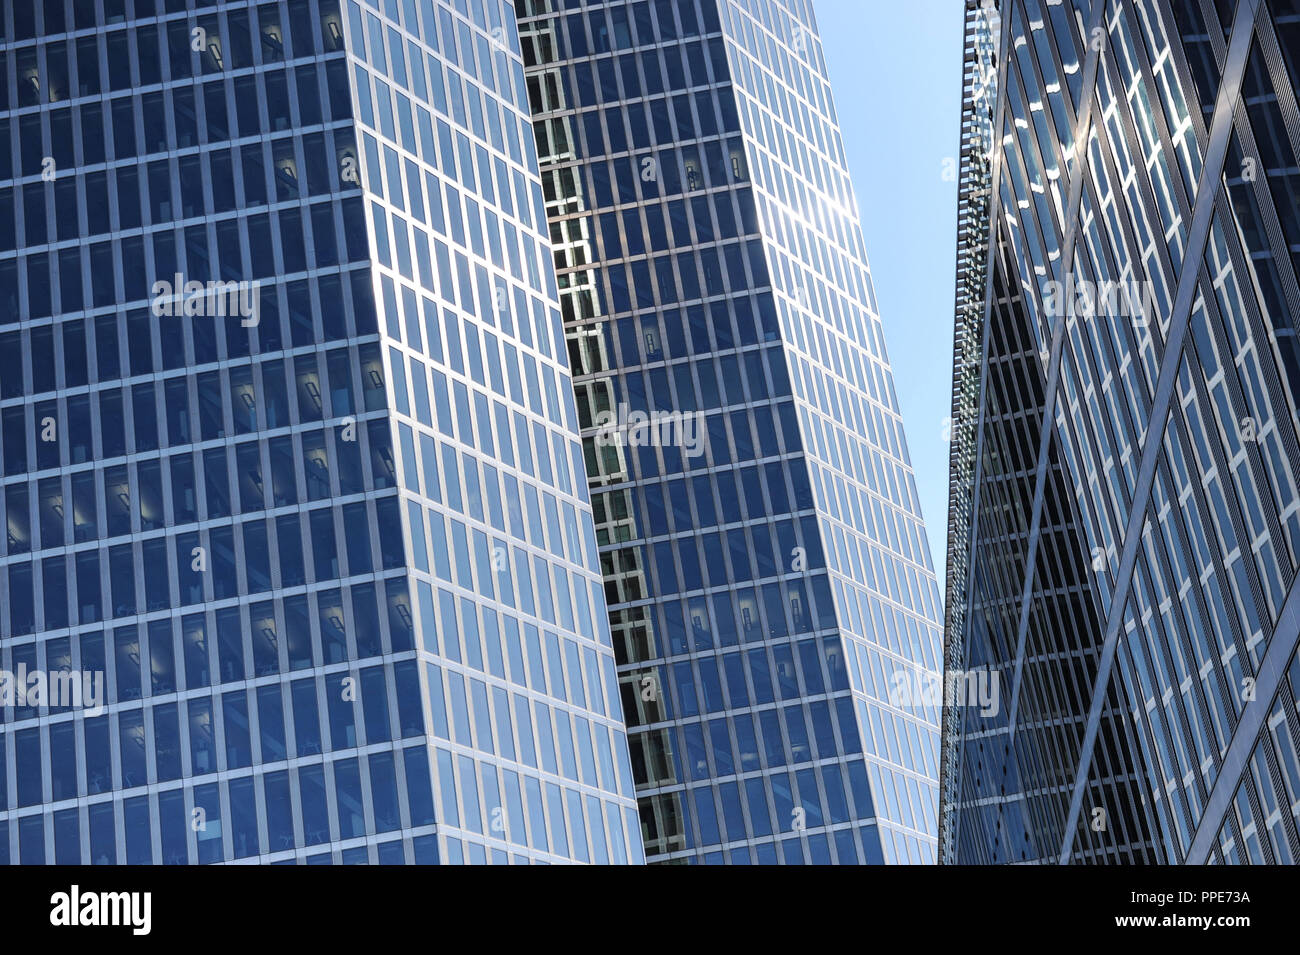 The Highlight Towers in Munich Schwabing. - Stock Image